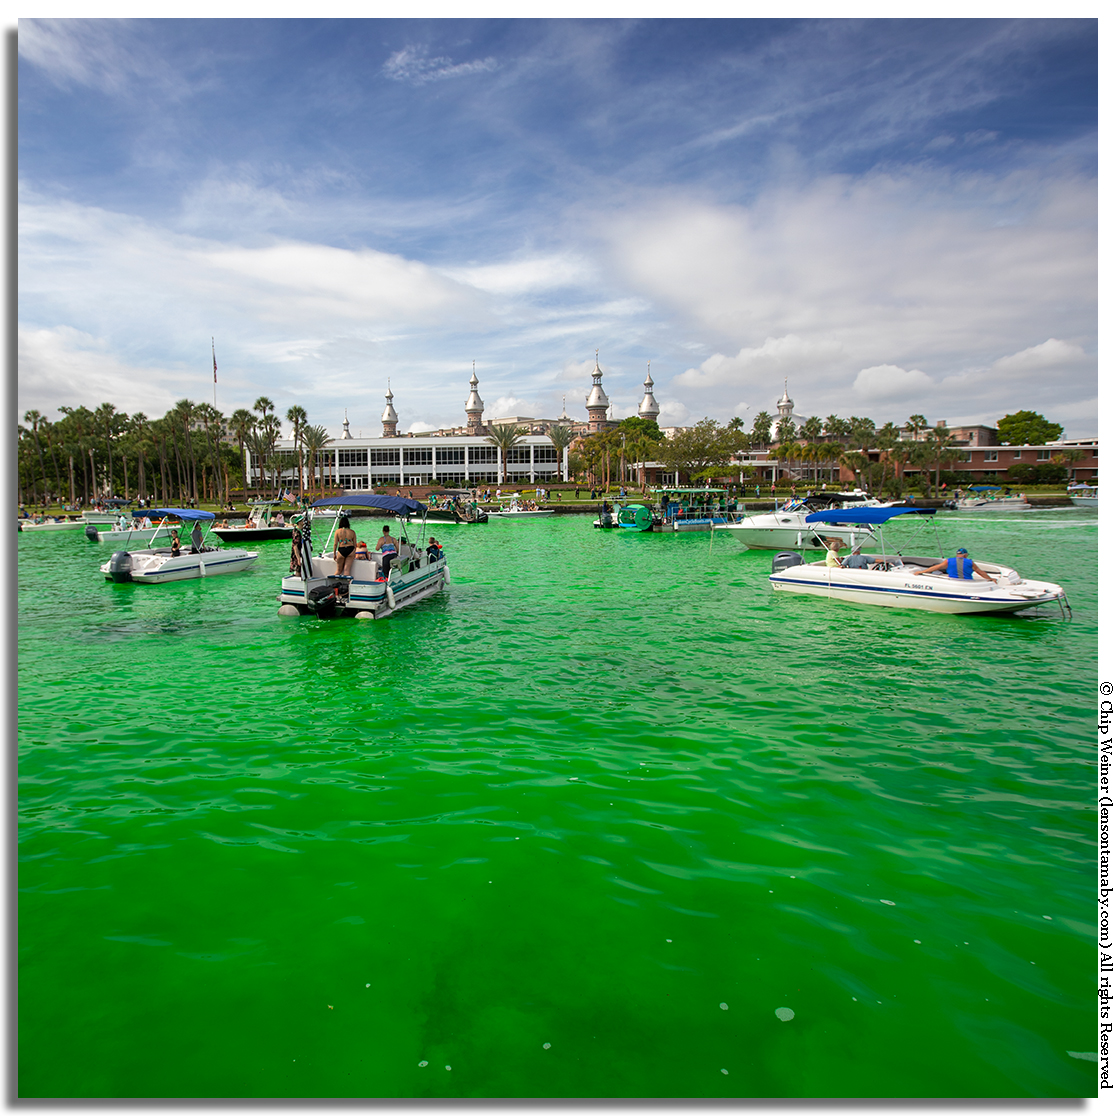 Yes, the river really is that green-a non-toxic biodegradable dye is used for the one day festival